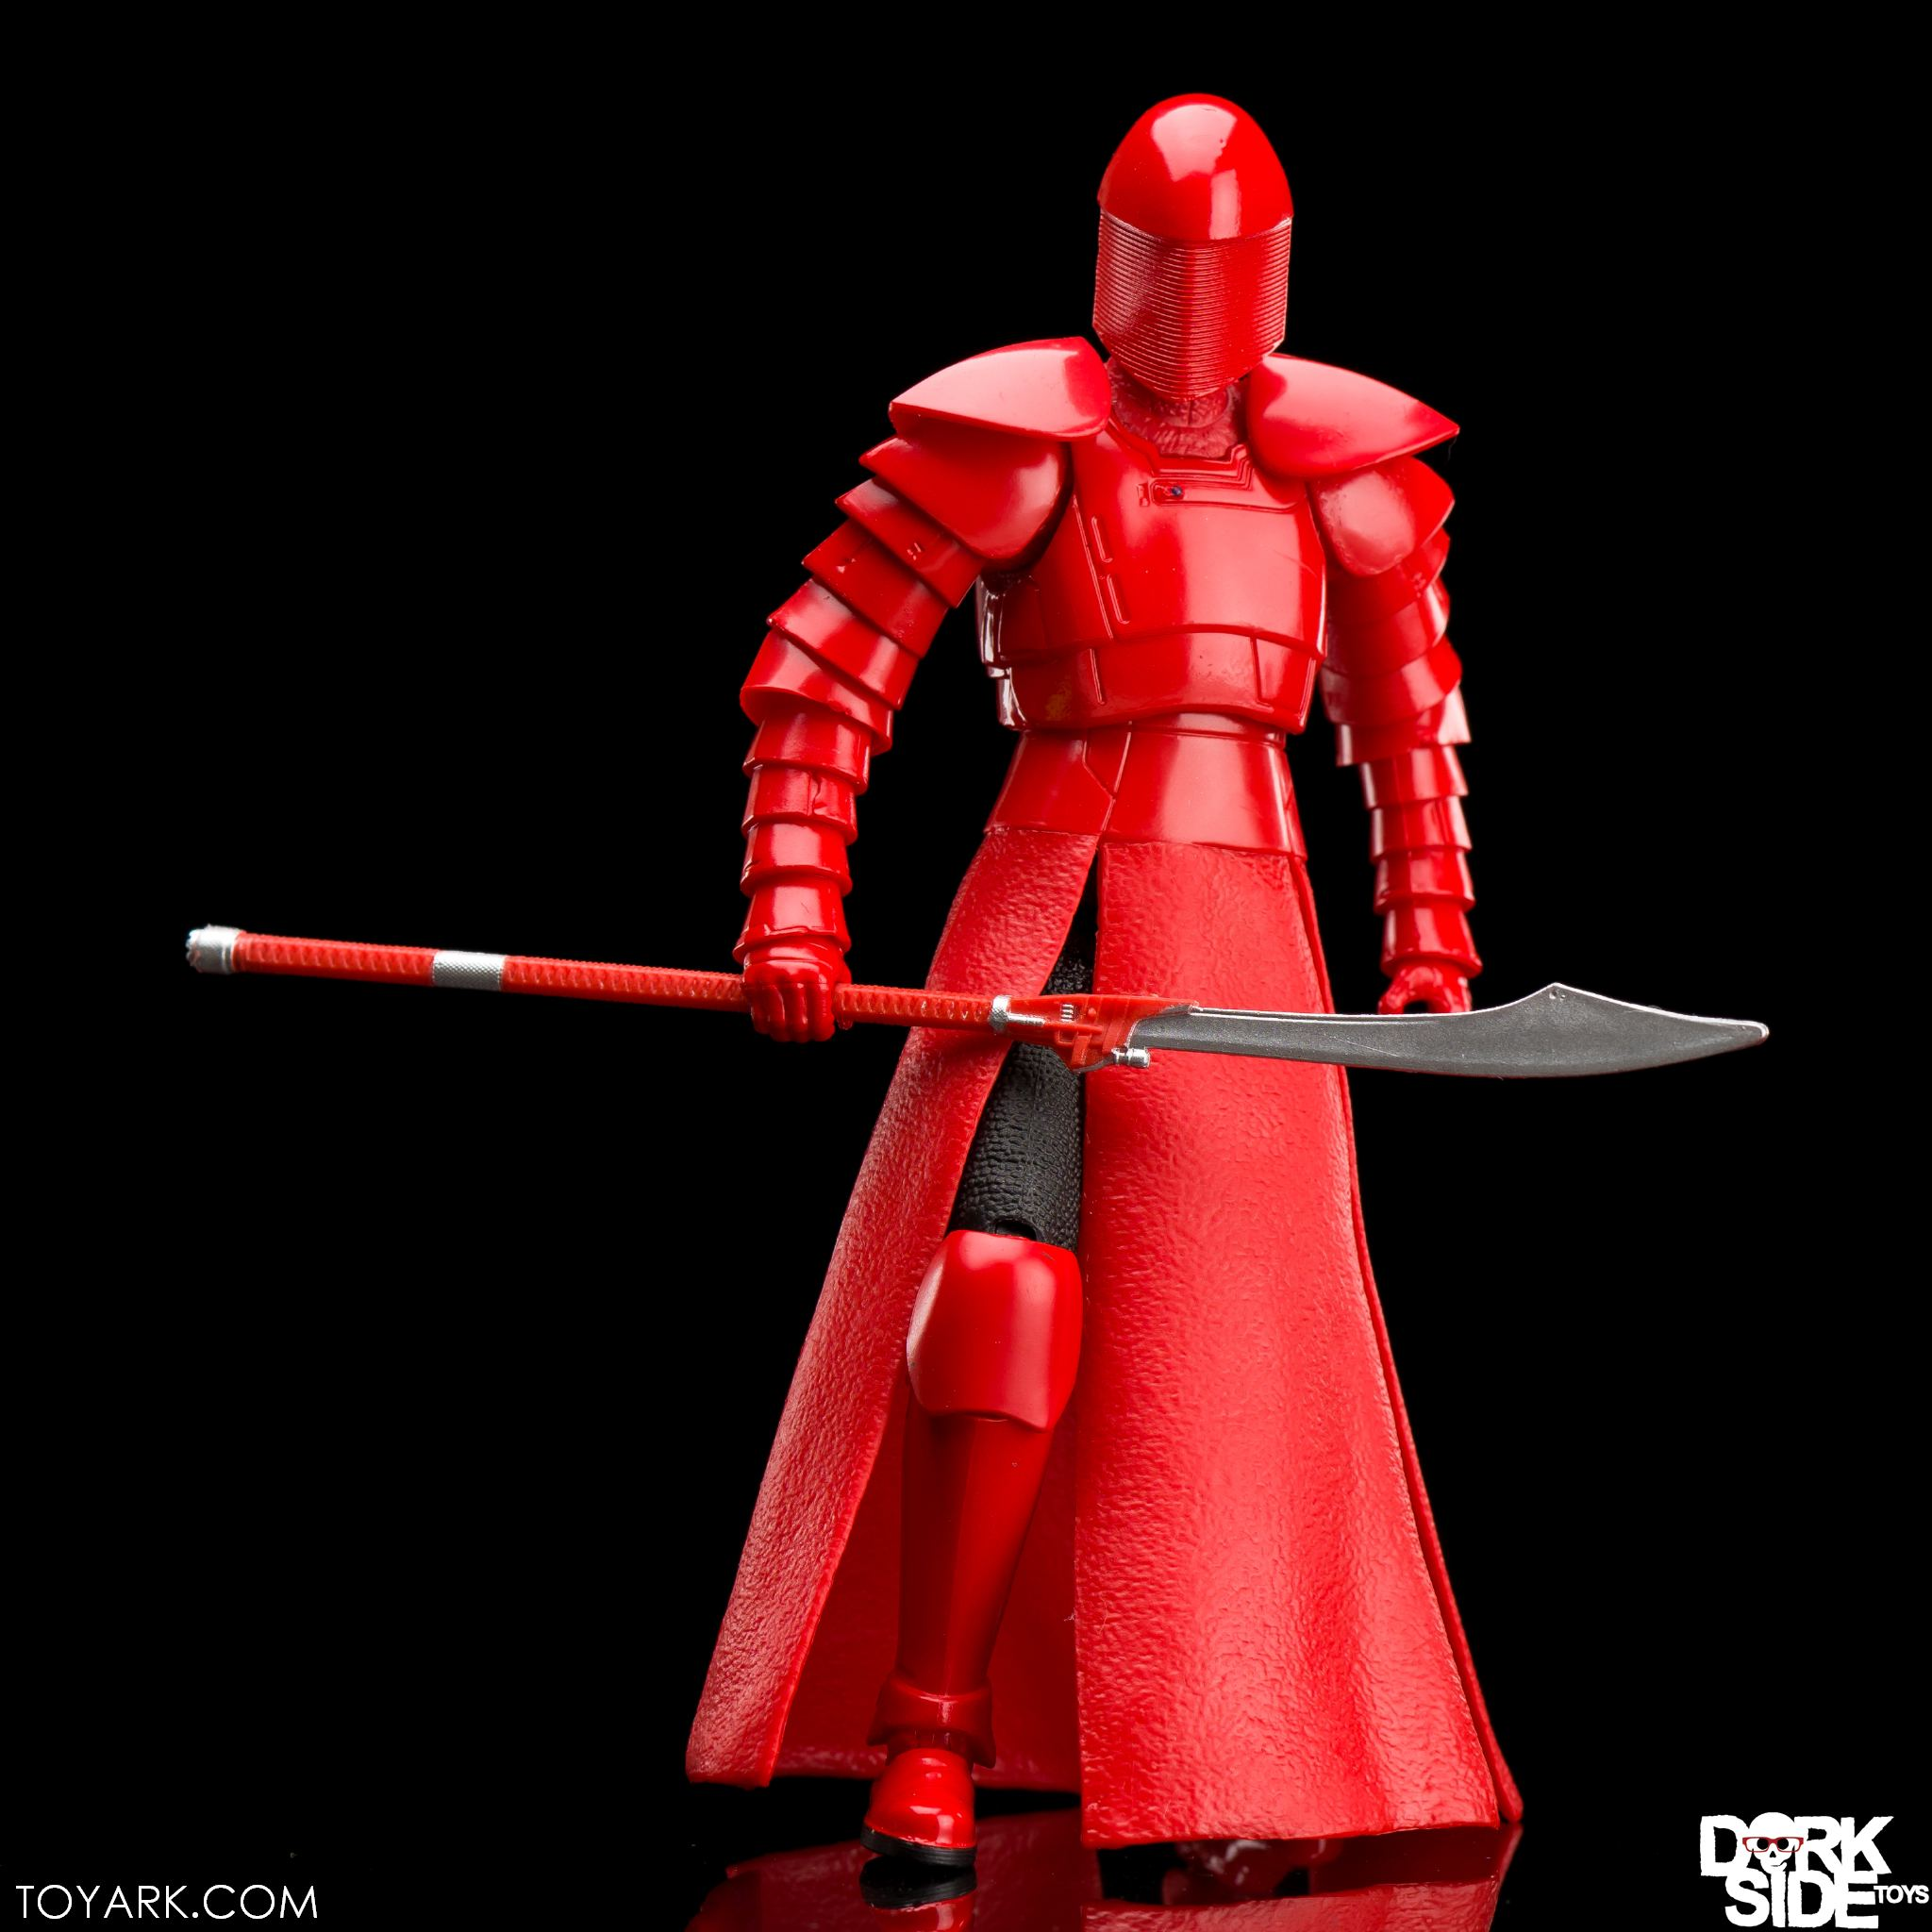 Elite Praetorian Guard Star Wars Black Series Tlj Photo